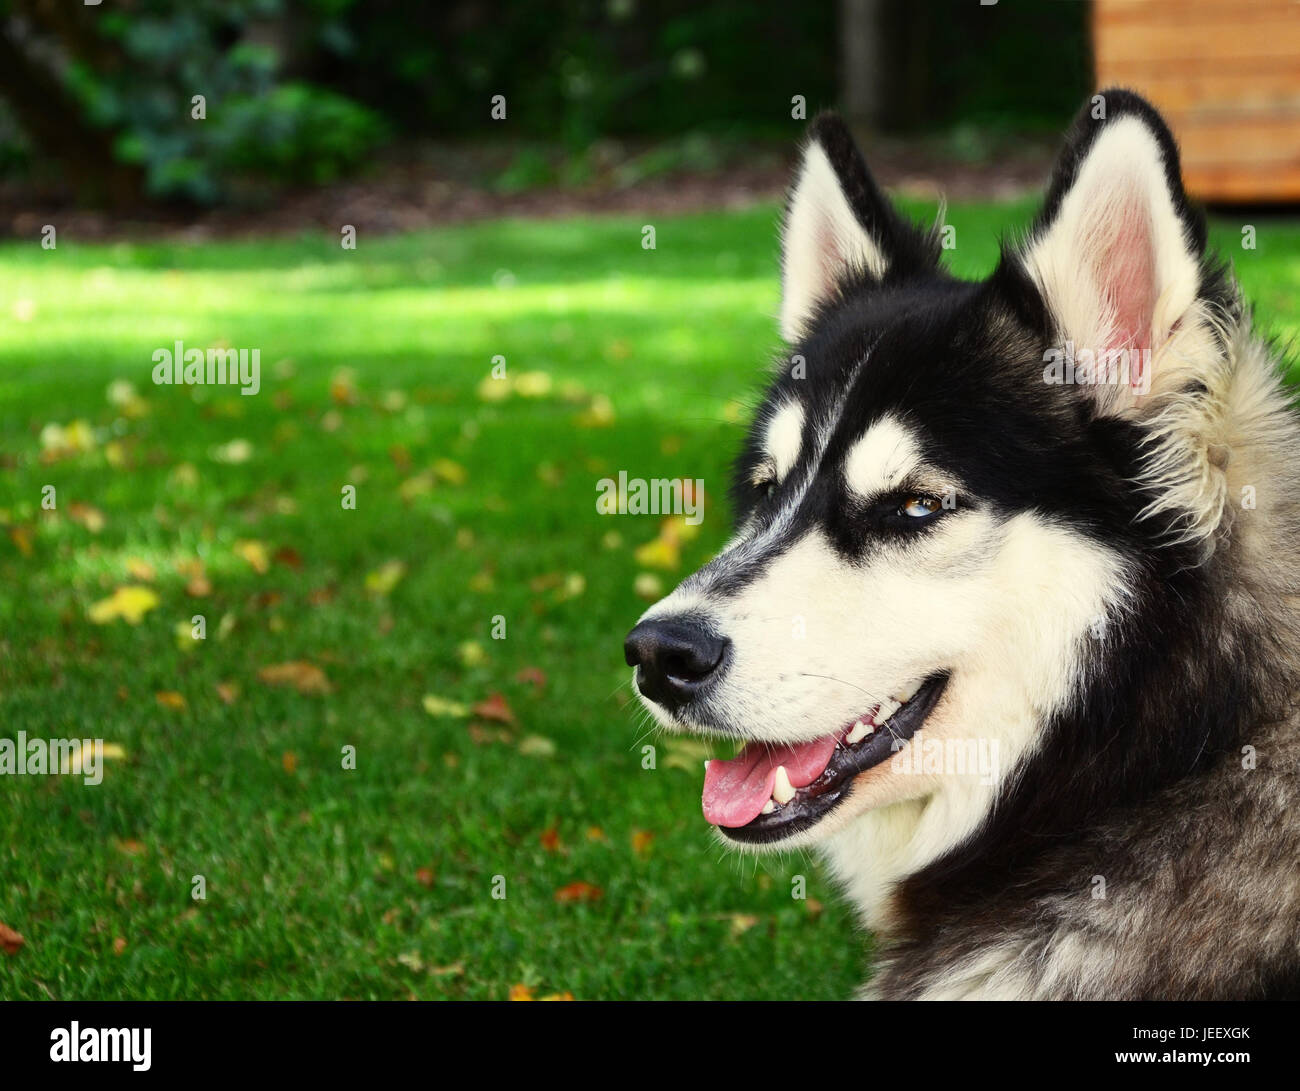 Siberian Husky smiling and panting in summer - Stock Image